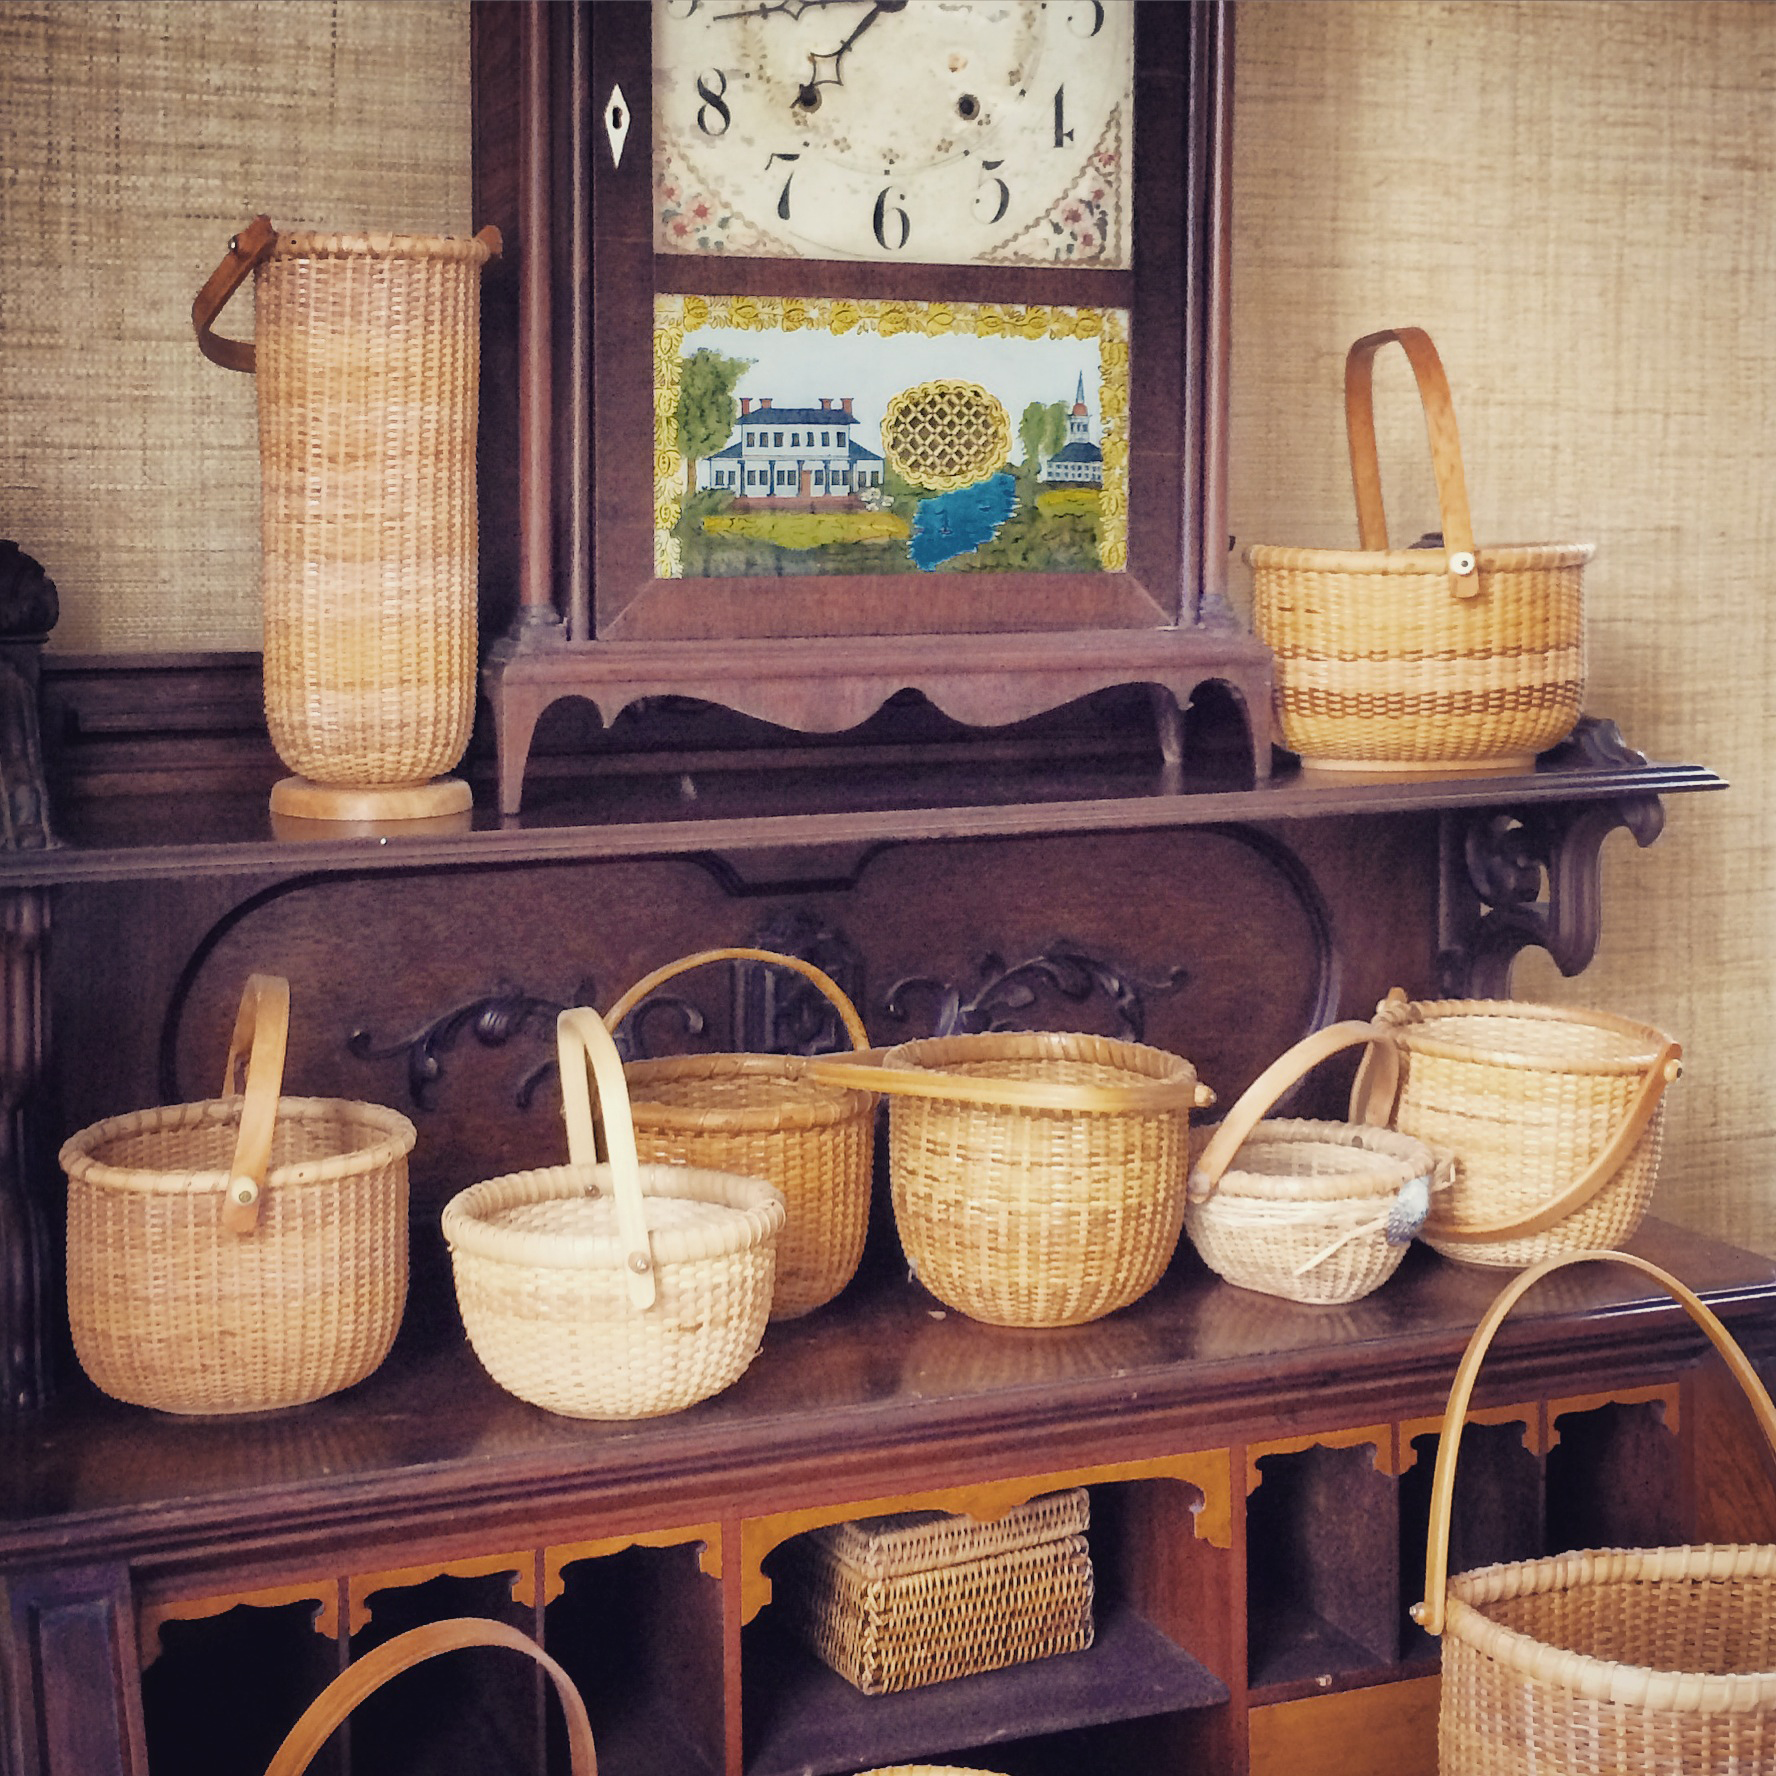 light shop baskets